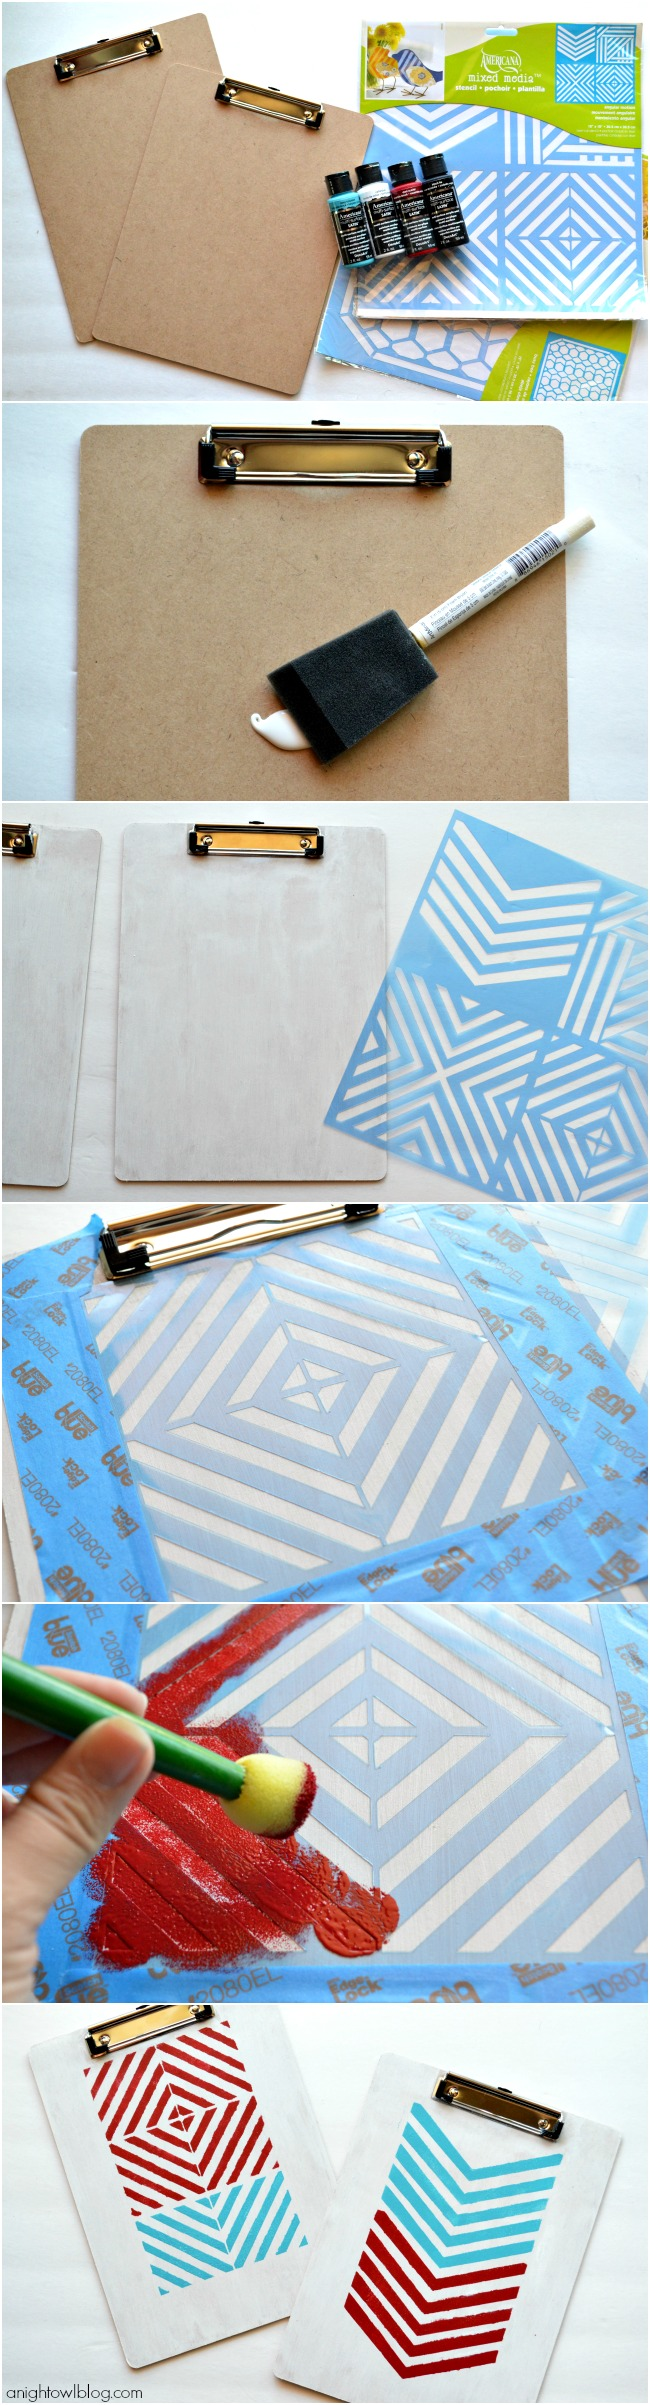 How to make Stencil Painted Clipboard with DecoArt Multi-Surface Satins | #stenciled #clipboards #decoart